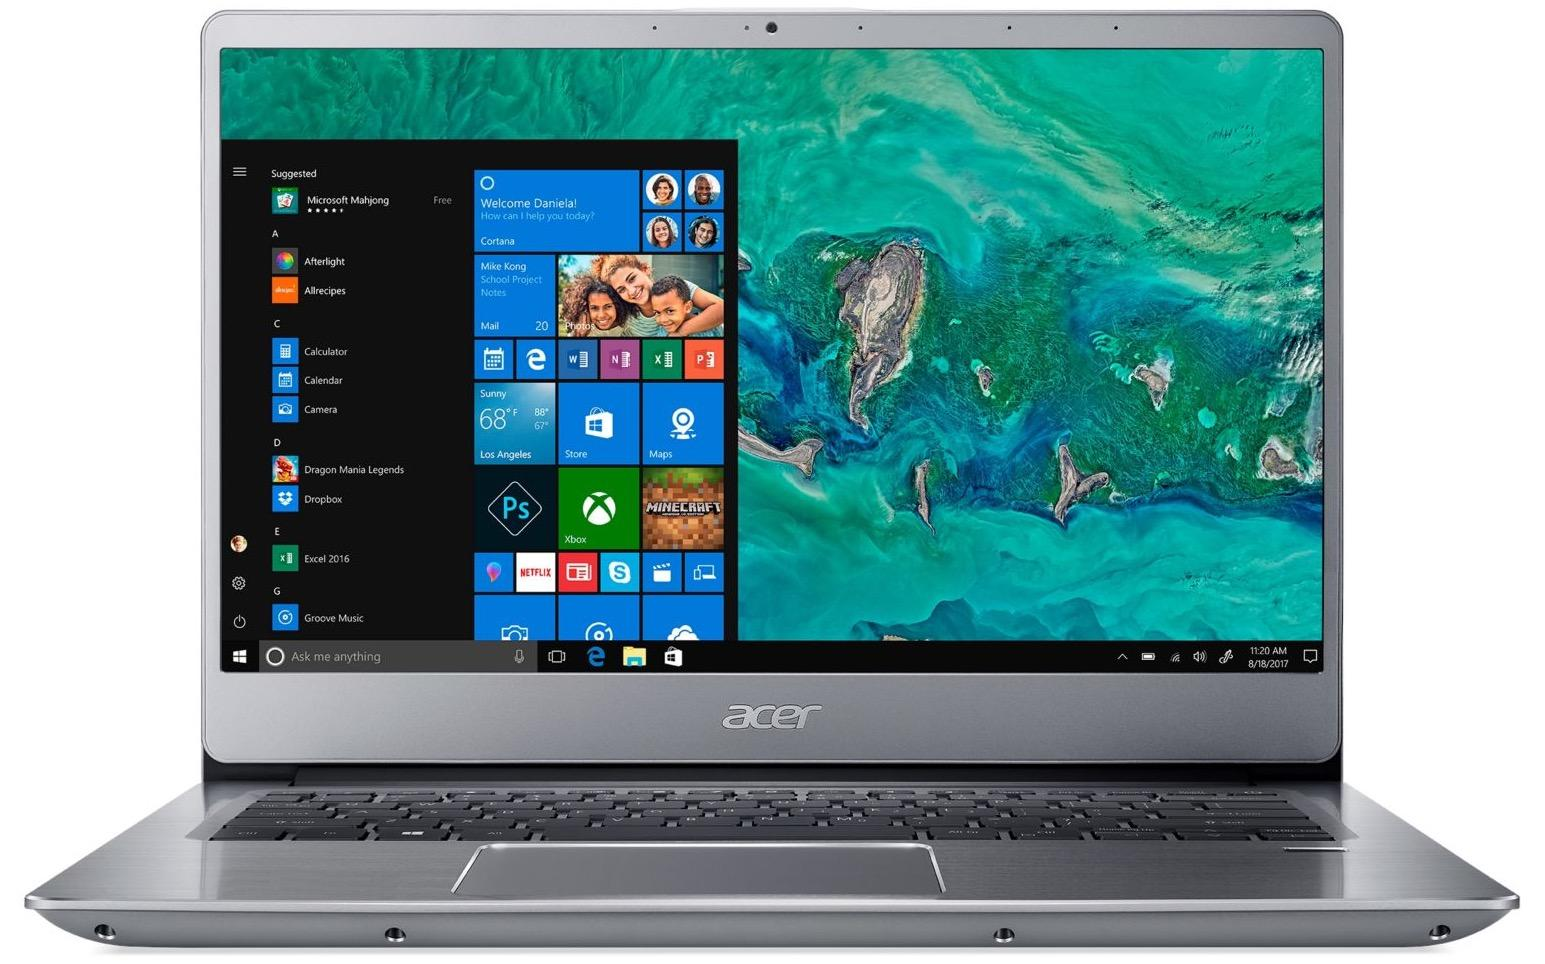 Image du PC portable Acer Swift 3 SF314-56-31UL Gris - i3 Turbo Boost